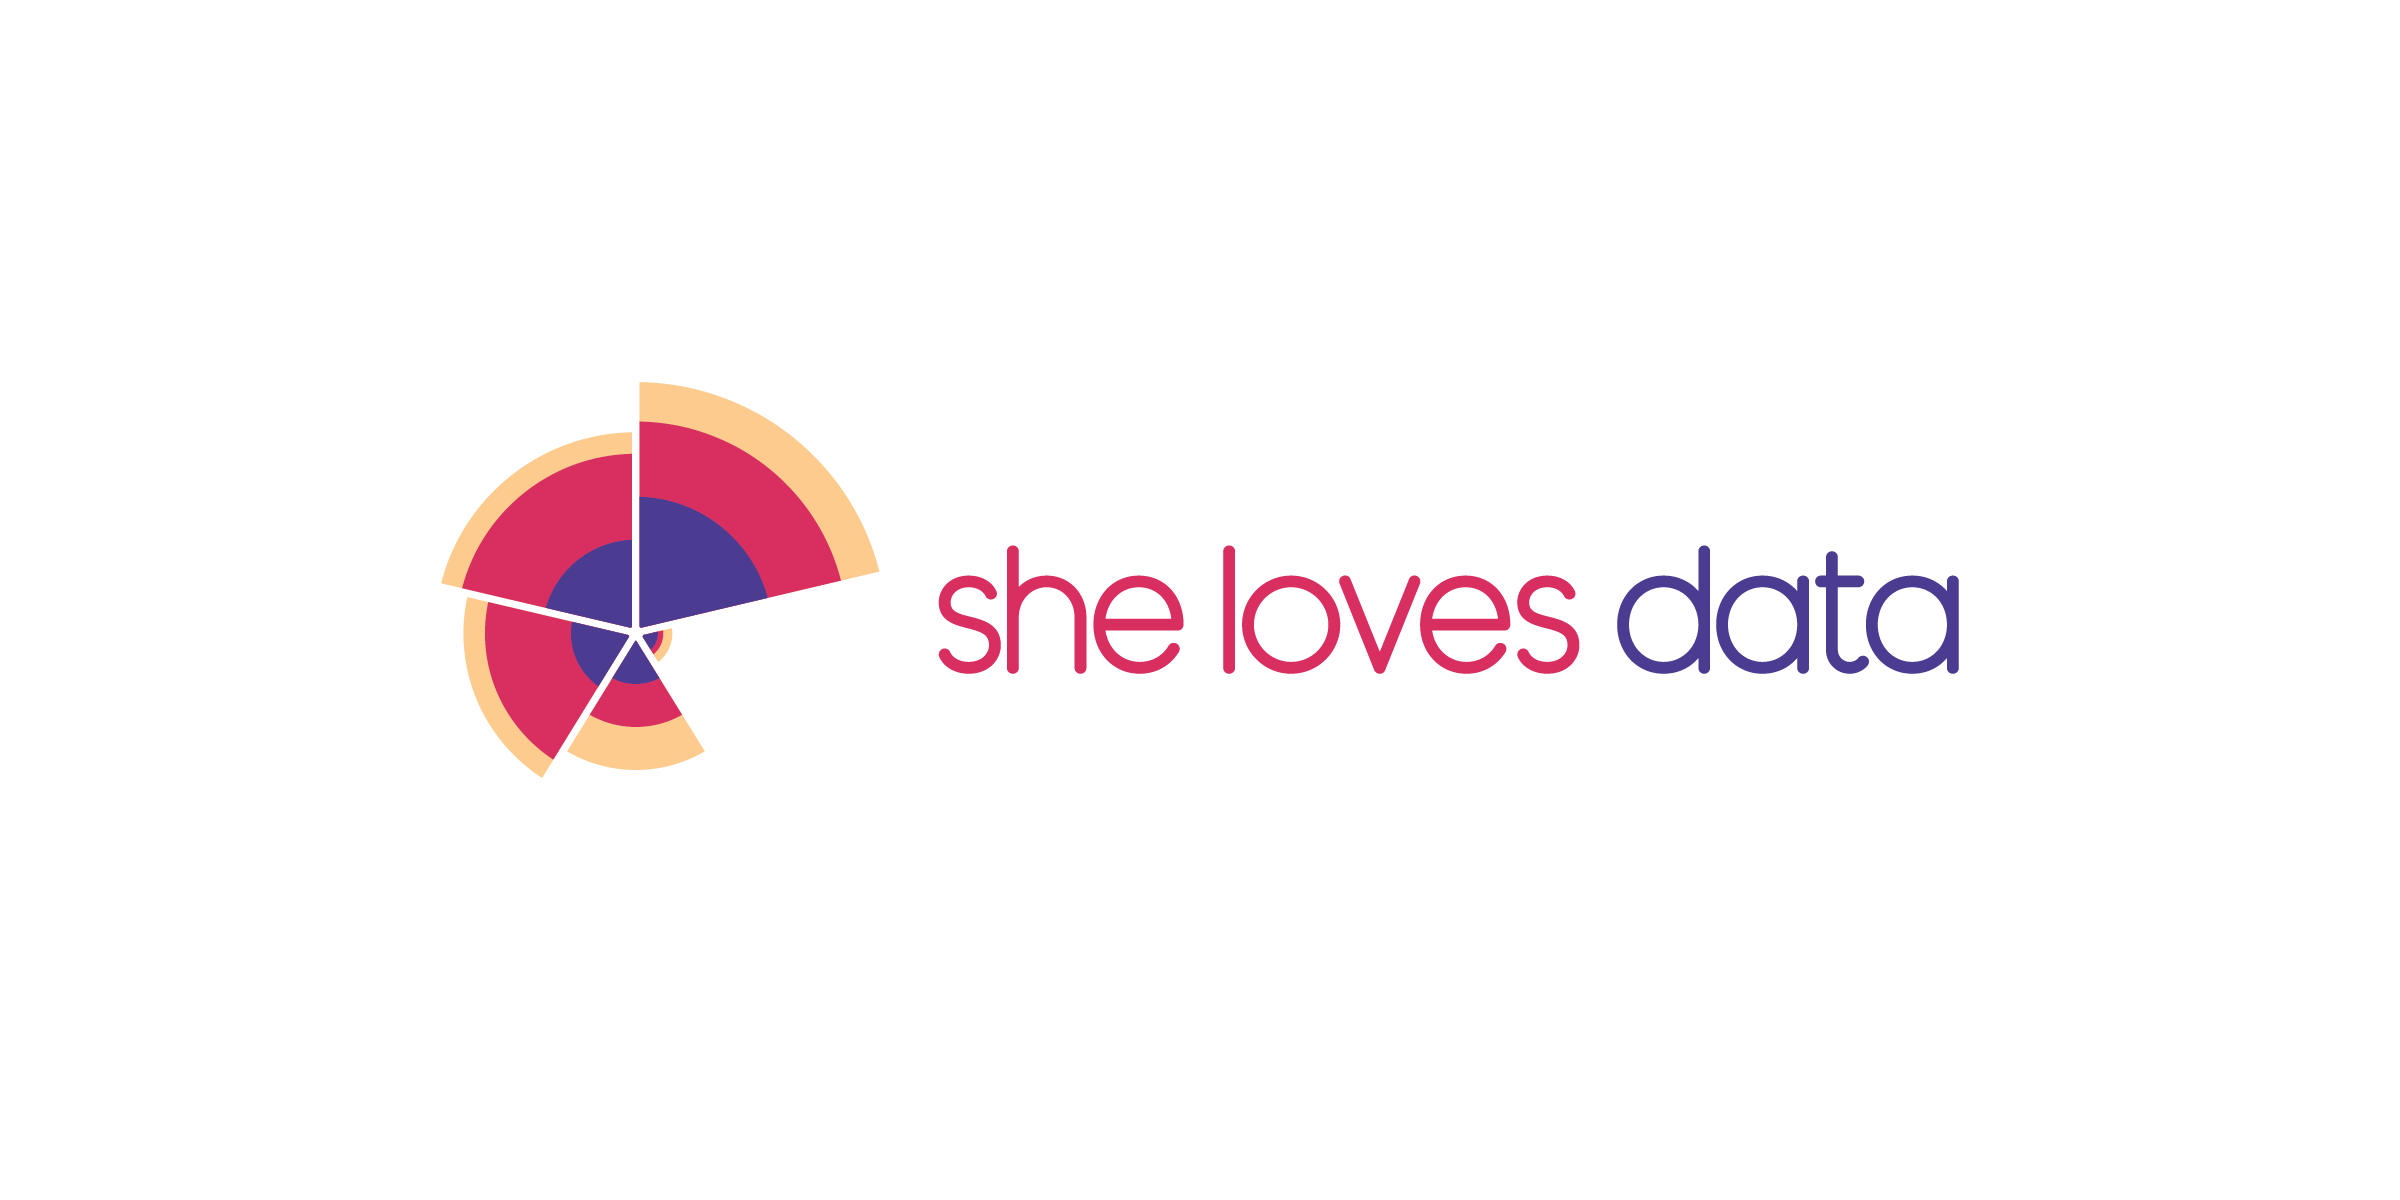 she-loves-data-wide@2x